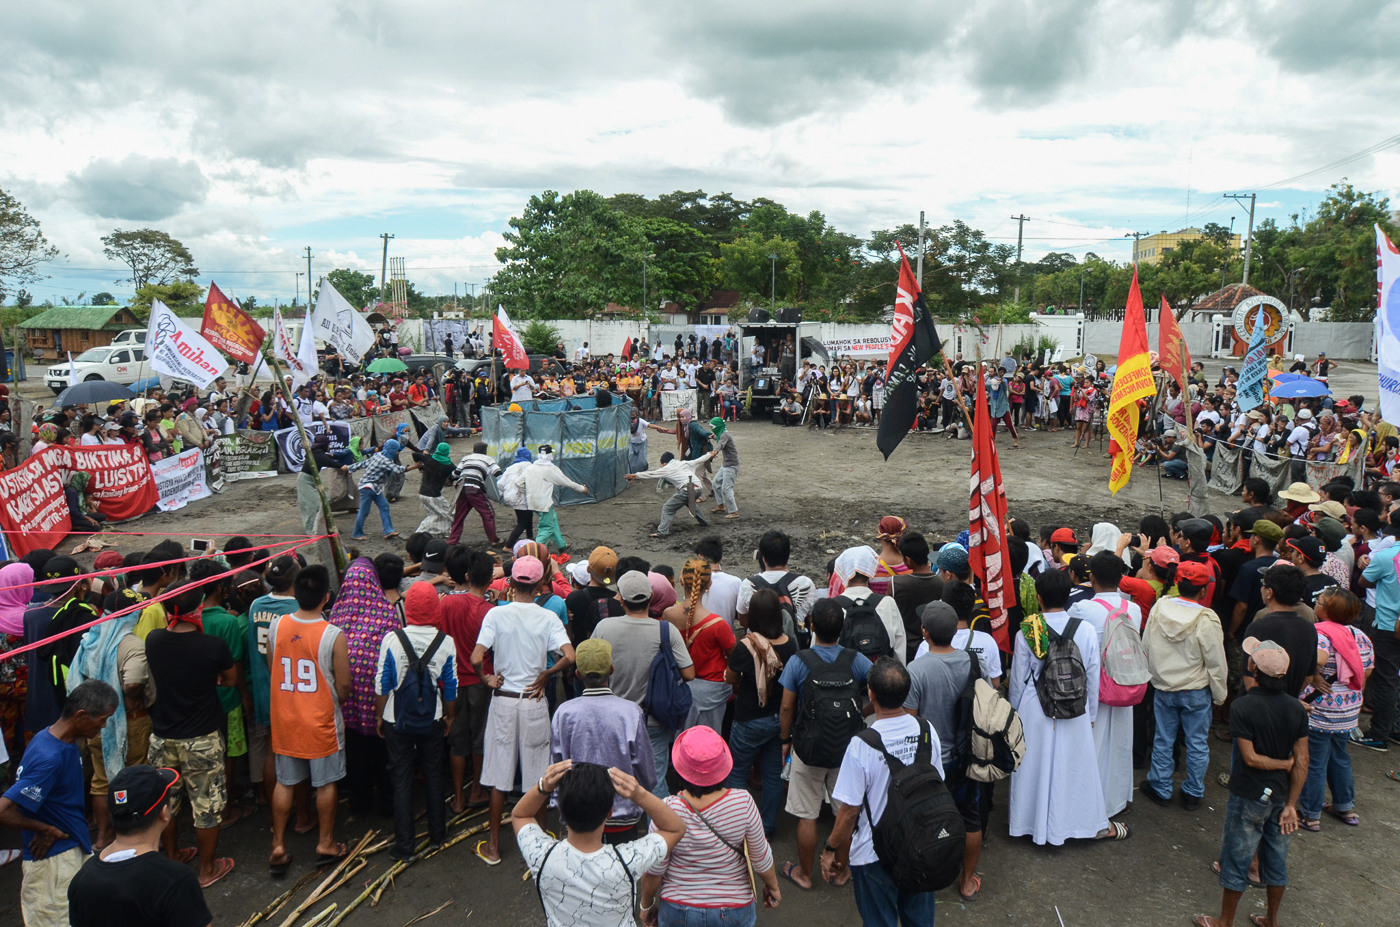 REENACTMENT. Cultural activists from TABLU reenacts the confrontation between the military and farmers during infamous Hacienda Luisita massacre. All photos by Dax Simbol/Rappler